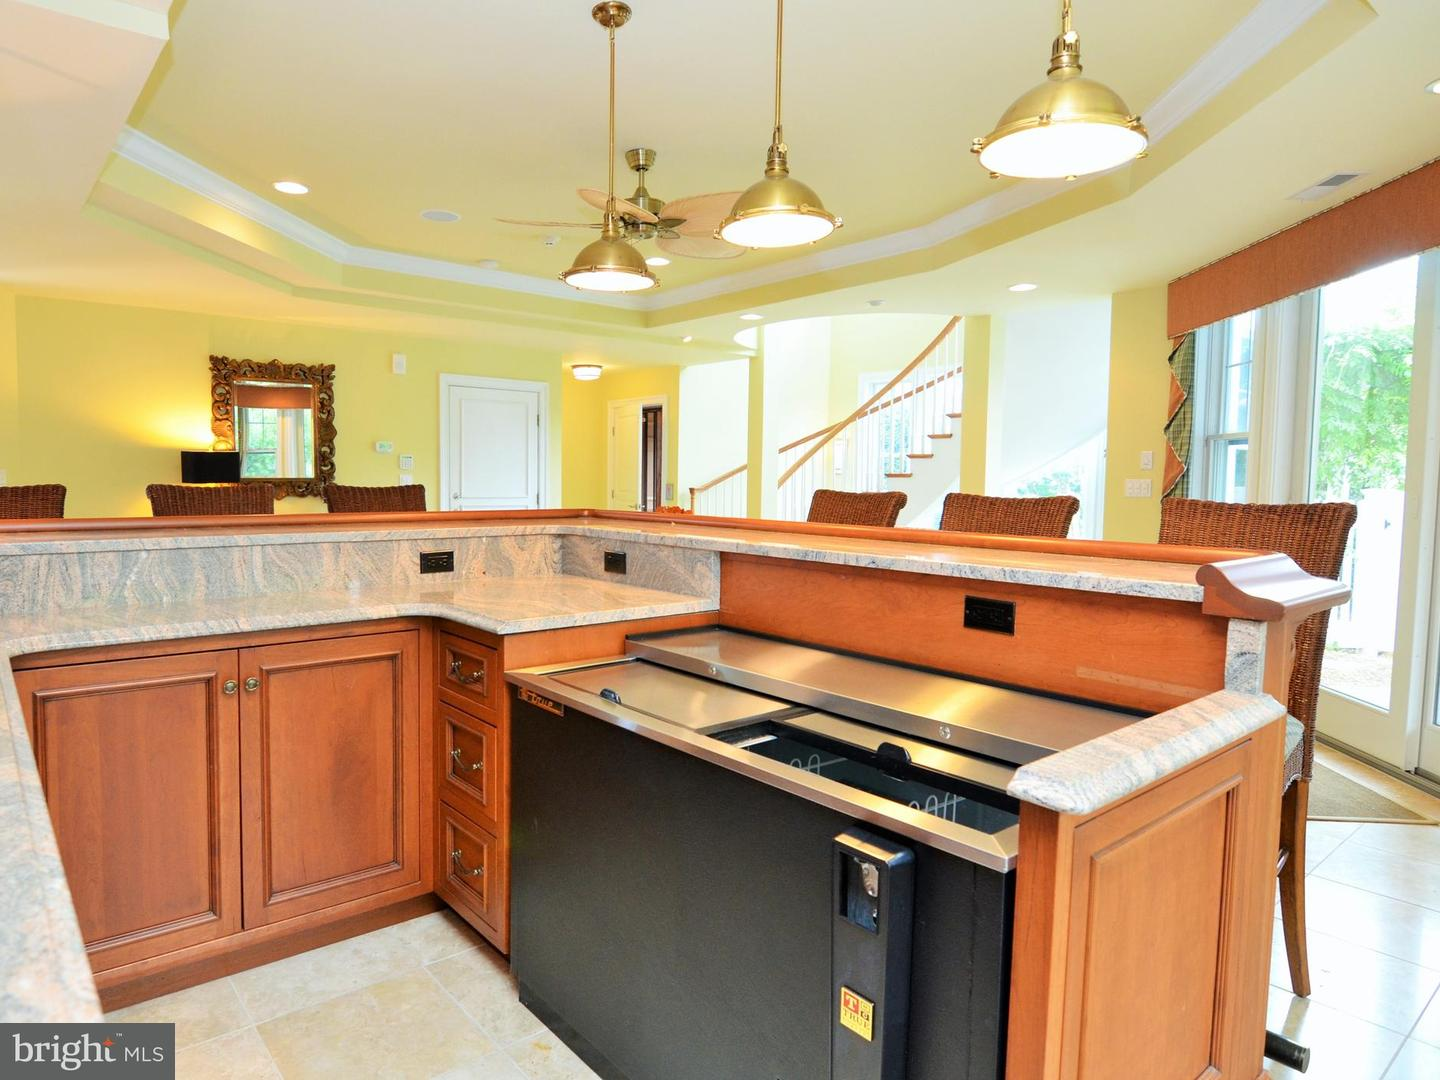 1002293530-300500807137-2018-09-25-15-08-24 31 Hall Ave | Rehoboth Beach, DE Real Estate For Sale | MLS# 1002293530  - 1st Choice Properties